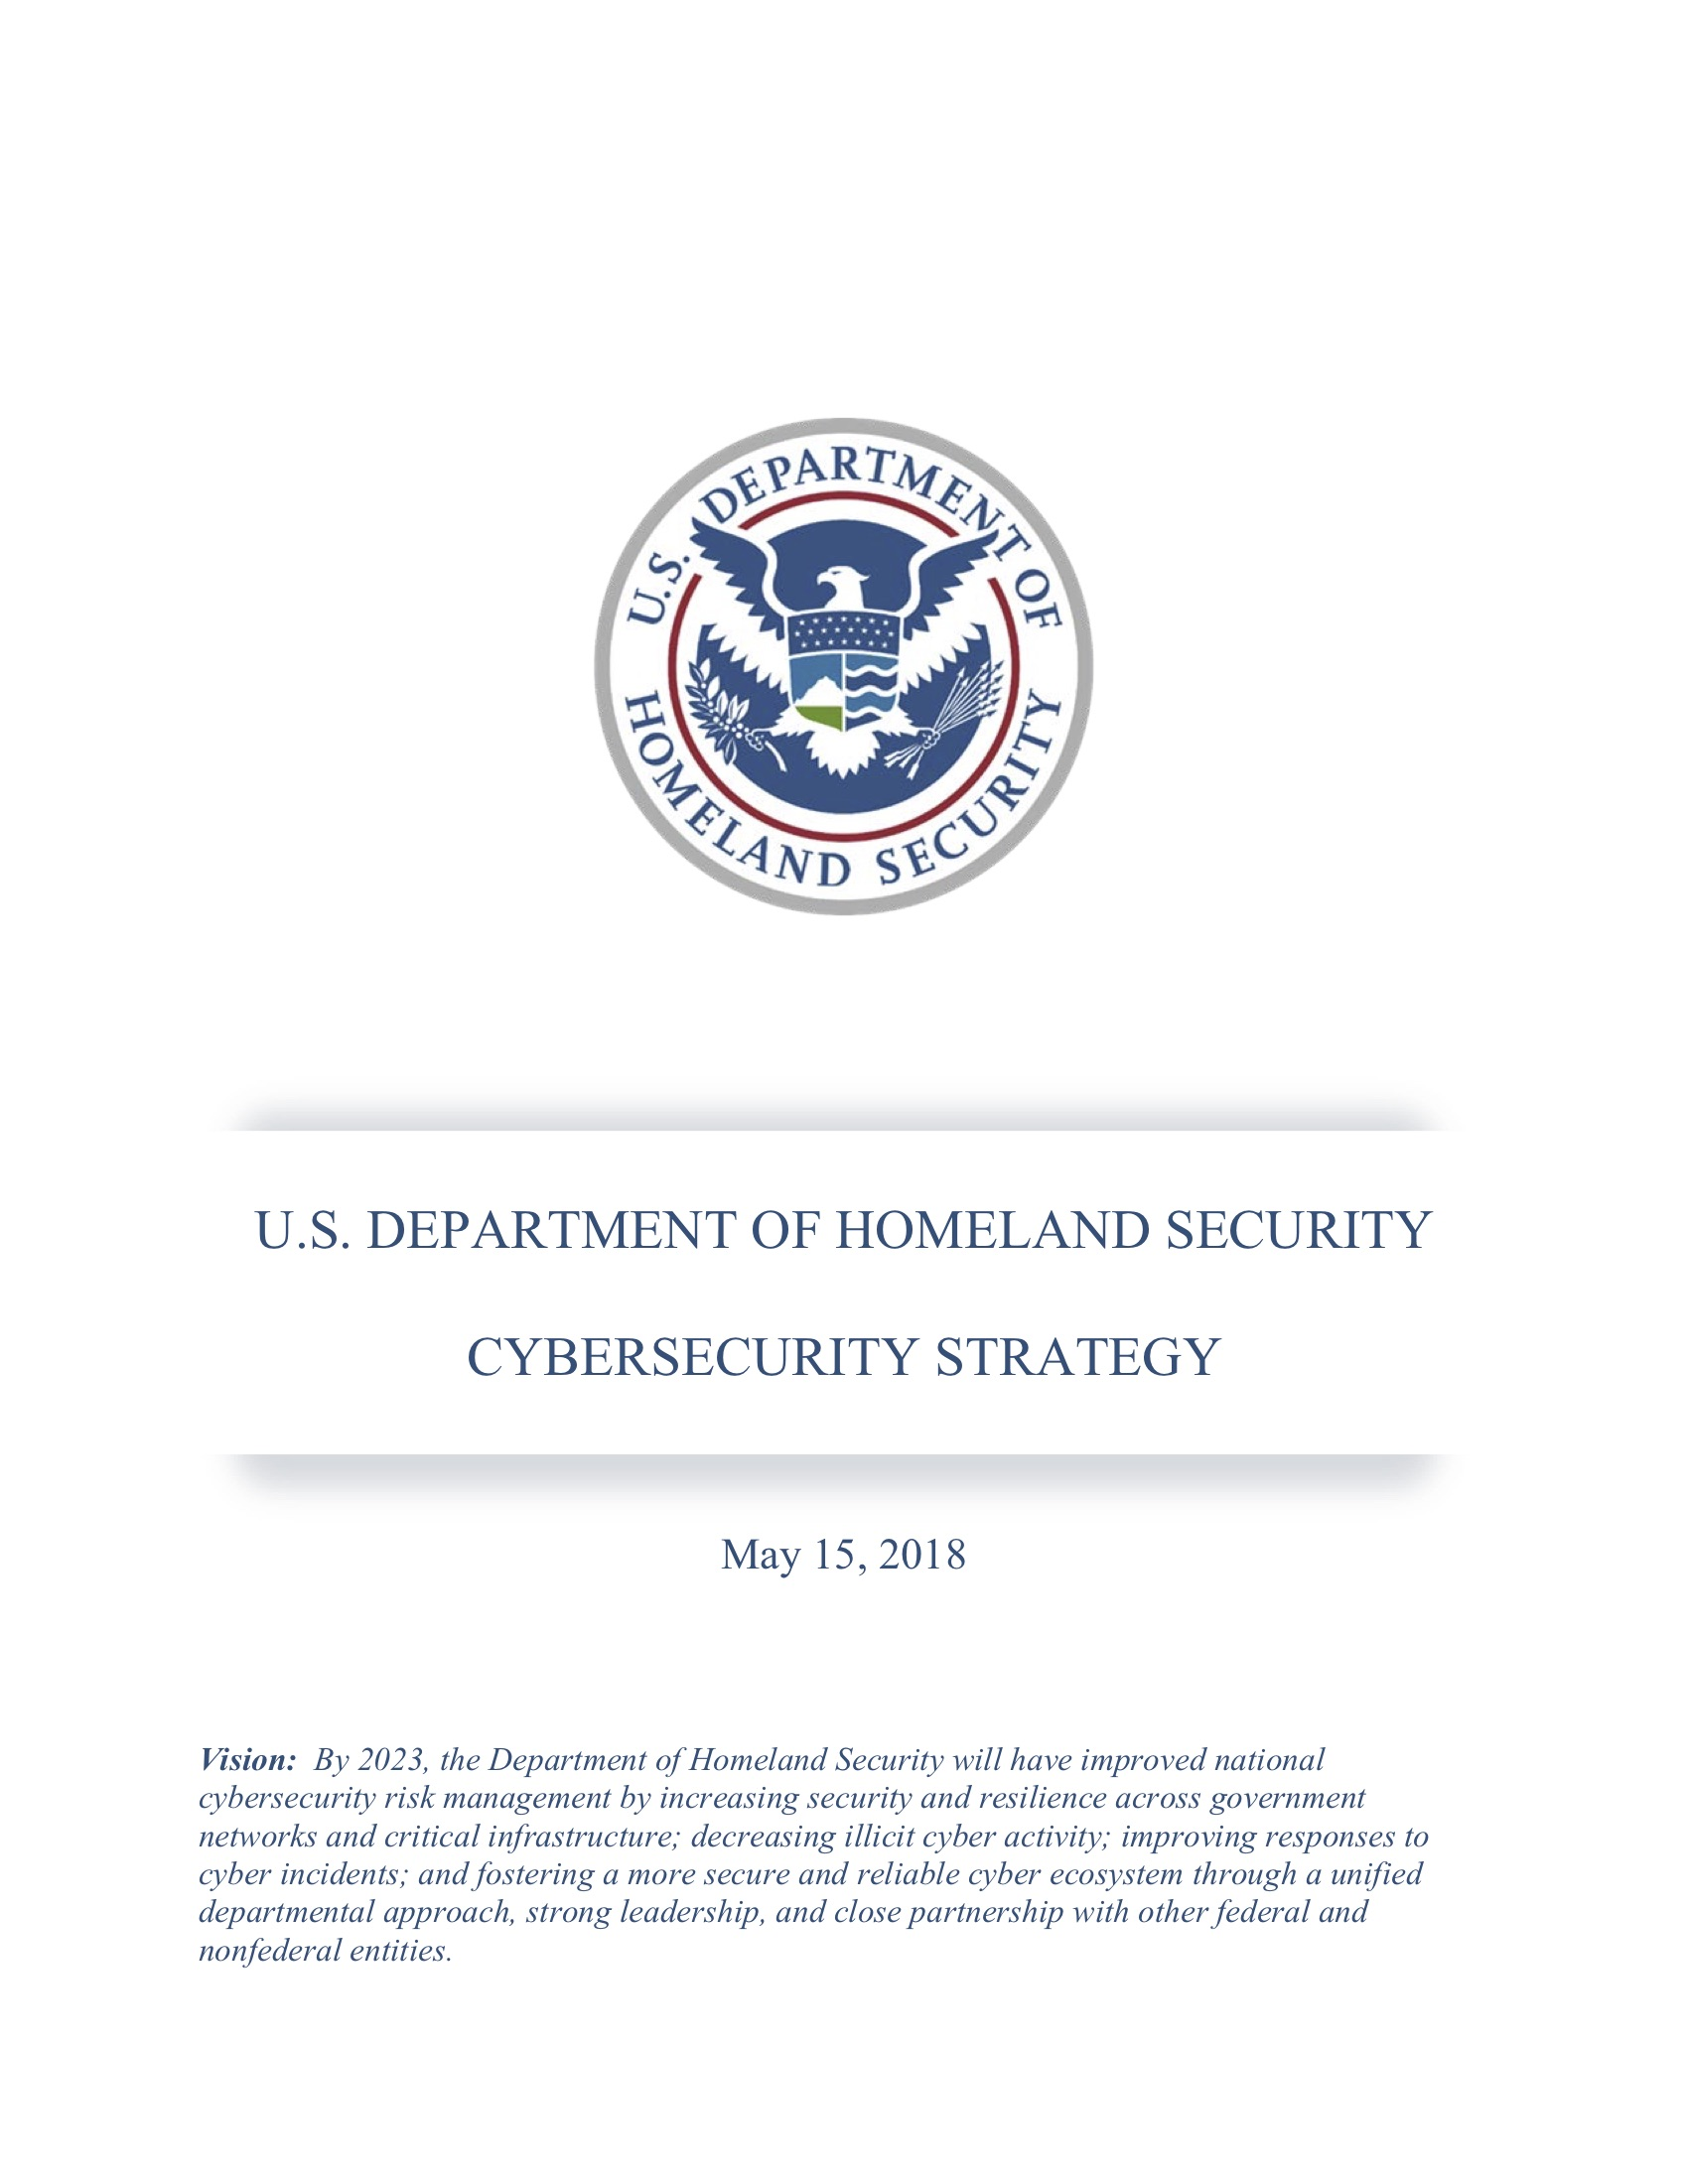 Words Of Cybersecurity Wisdom From The Us Department Of Homeland